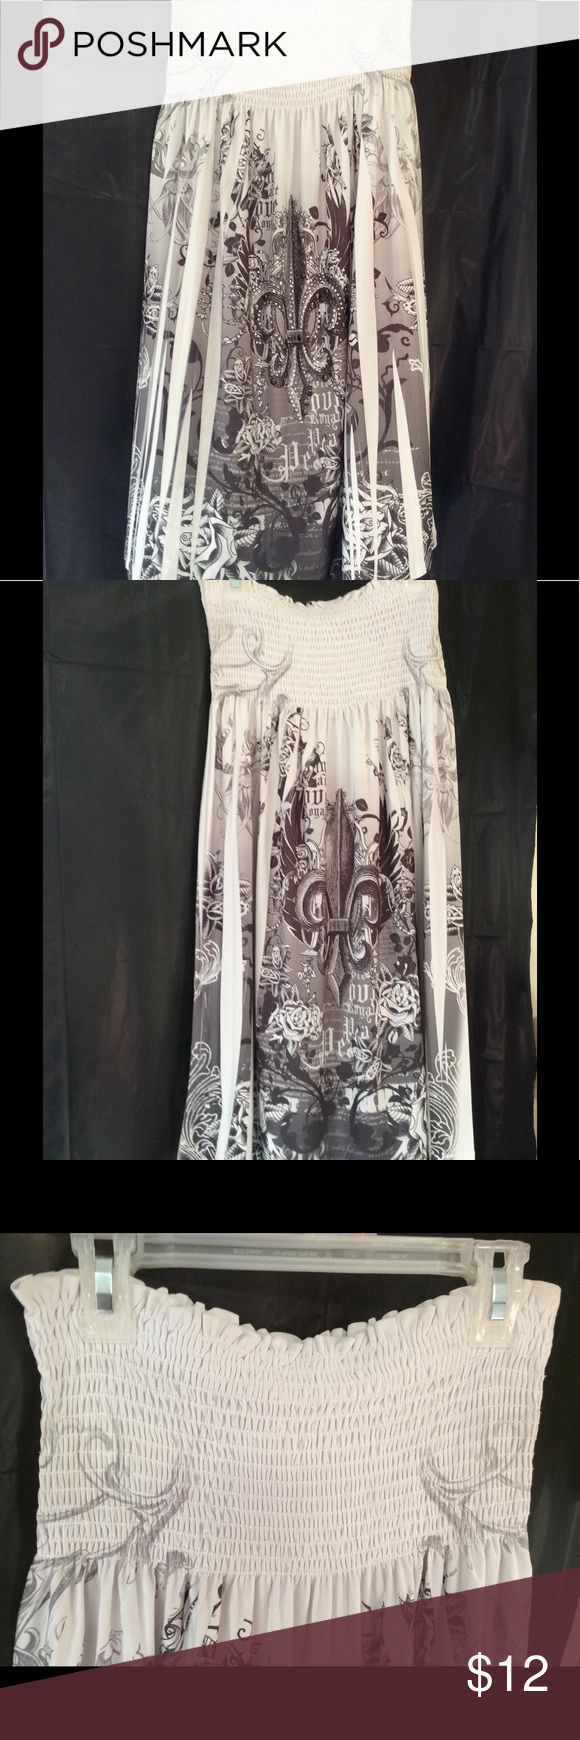 White Tube Top Dress sz M Excellent used condition, white dress with black fleur de lis design covering the sides and lower portion of the dress. There are also clear and black colored embellishments on the front of the skirt to detail the design. The bodice is smocked for comfortable fit. There are no snags, stains, rips or missing beading on the dress. Dresses Midi